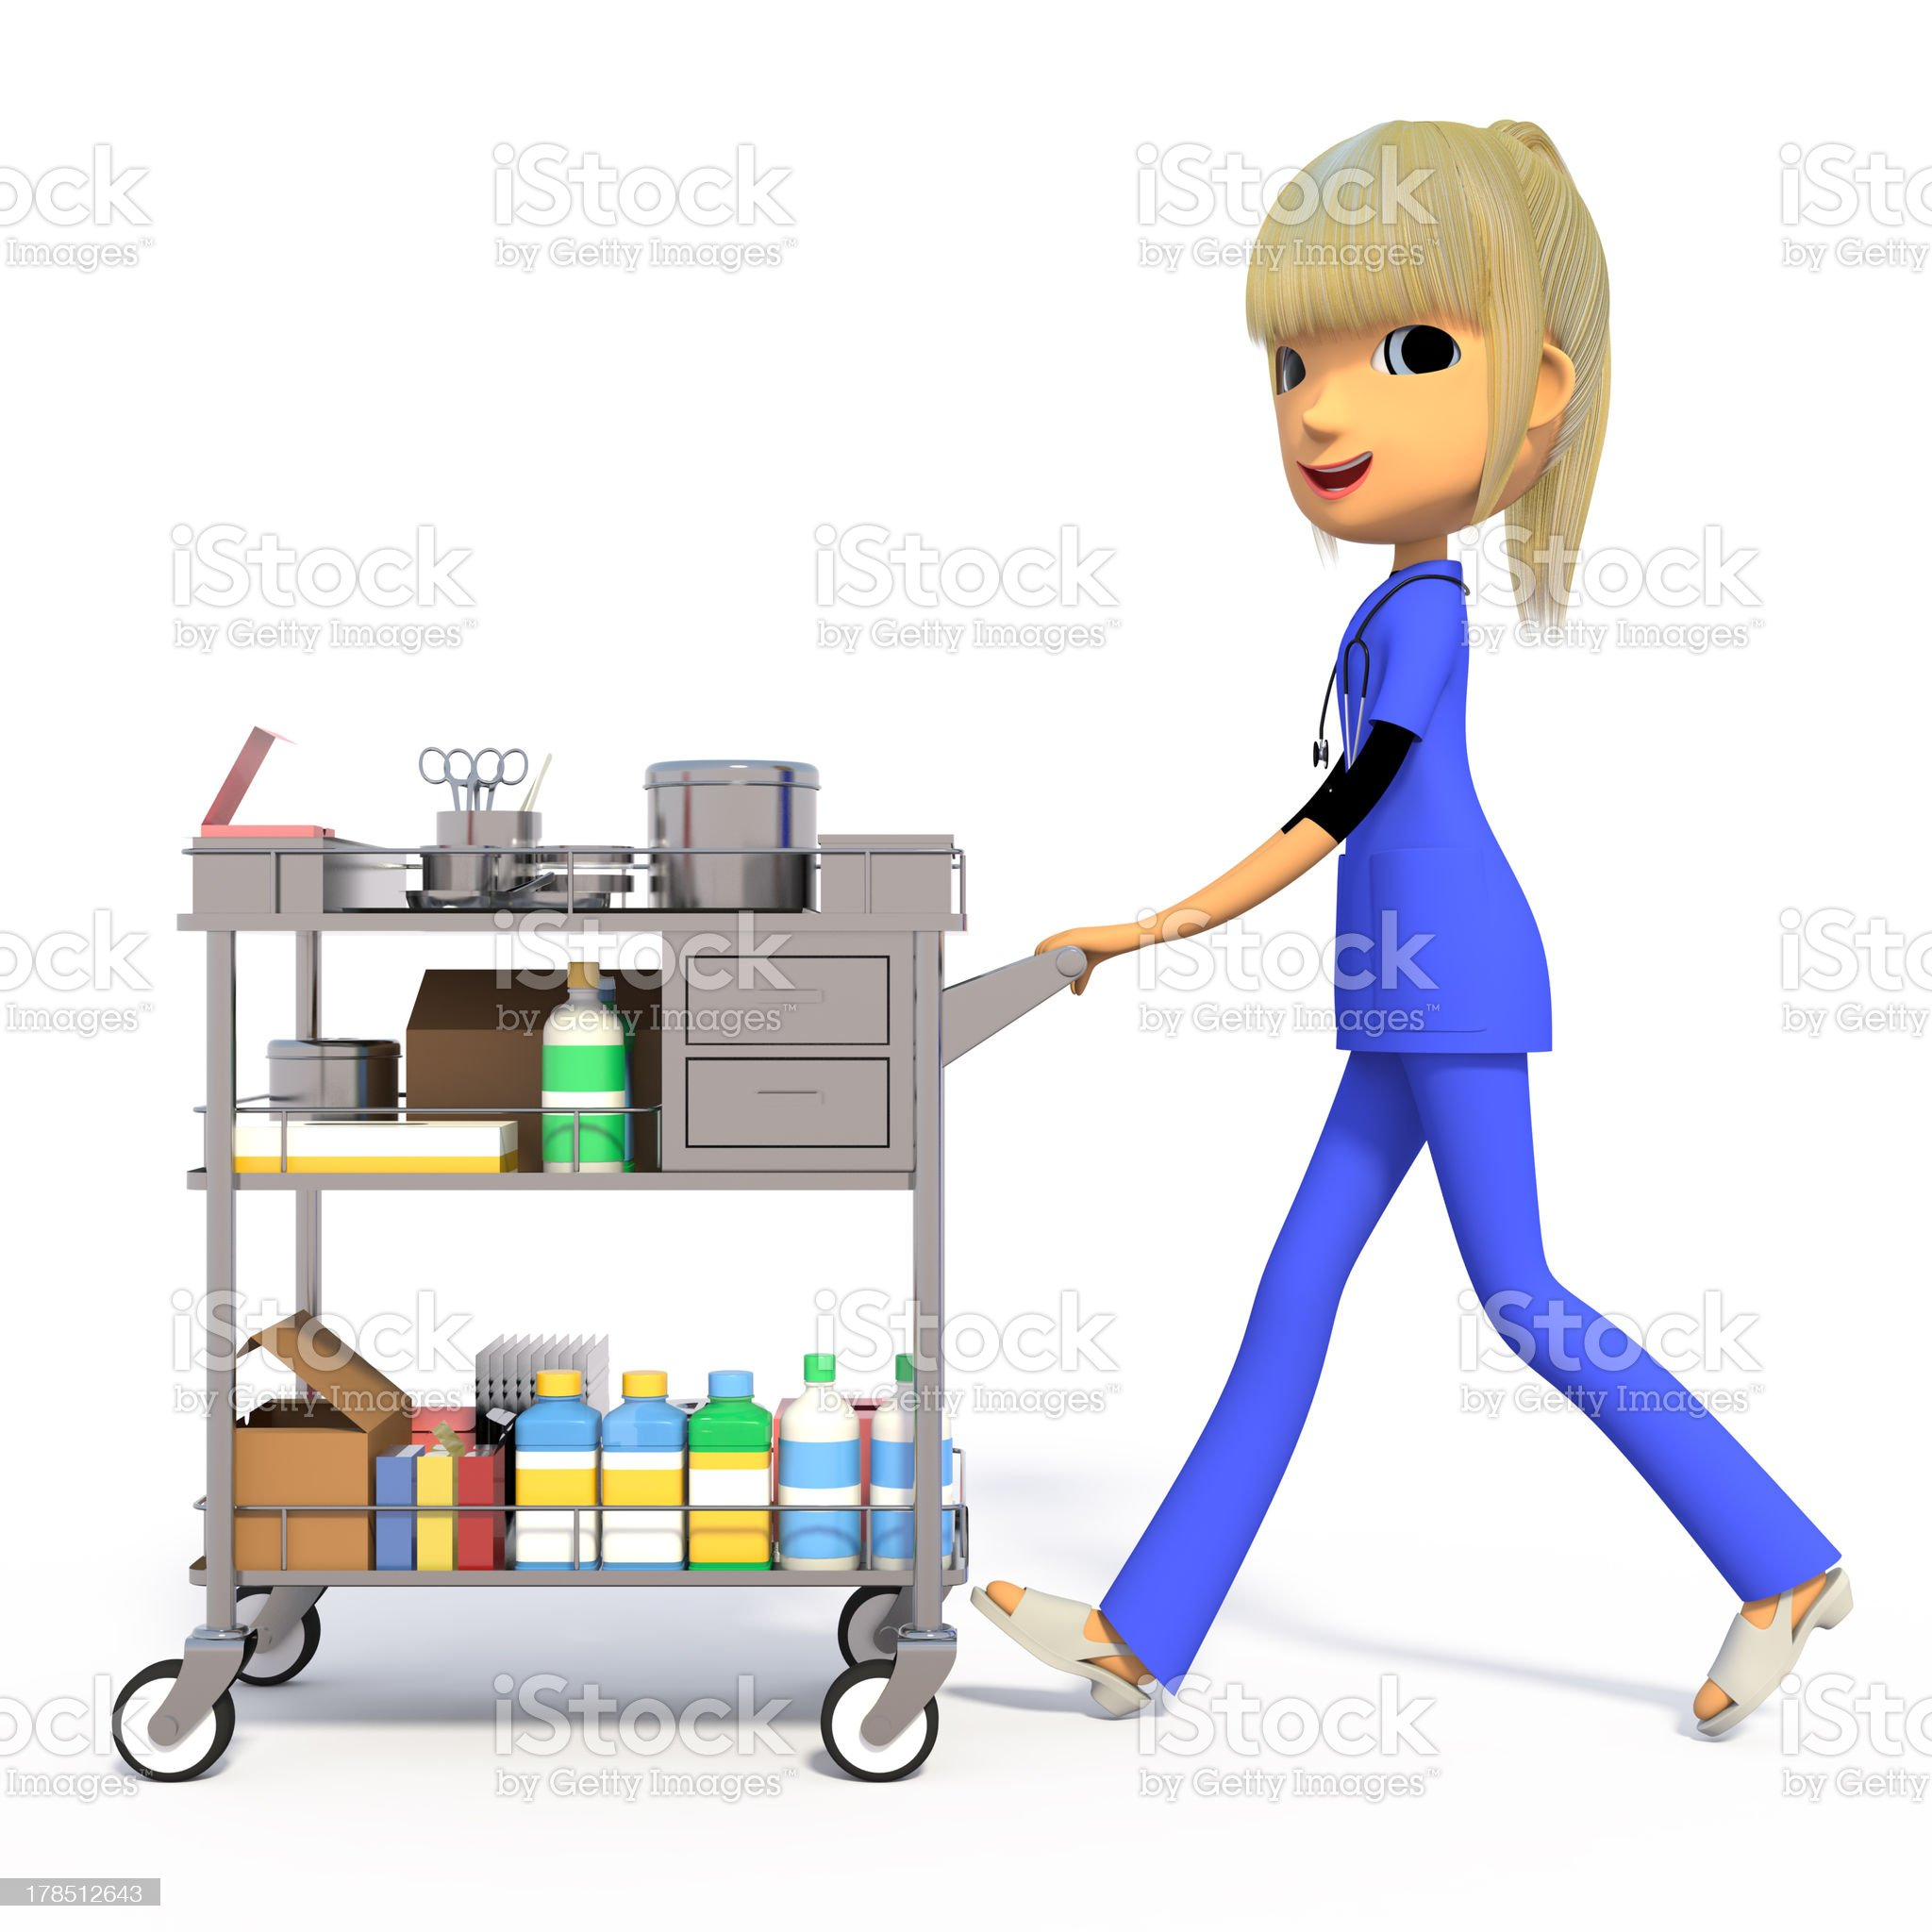 Nurse pushing the medical wagon. royalty-free stock photo